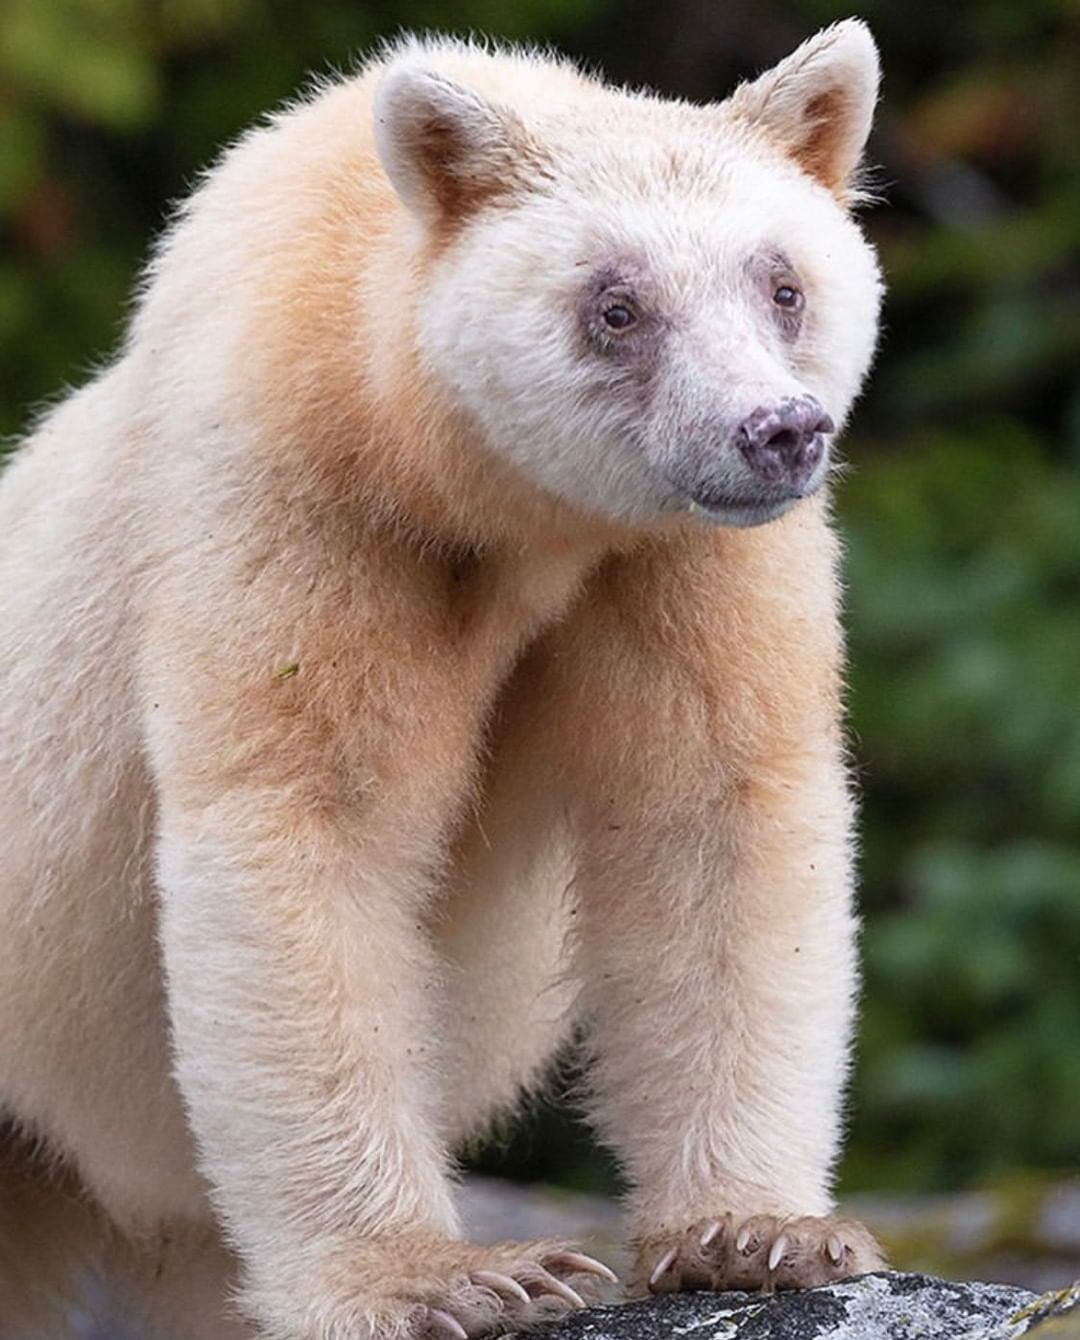 A beautiful white spirit bear captured in a close up photograph sits on all fours while staring with a soulful expression in to the camera